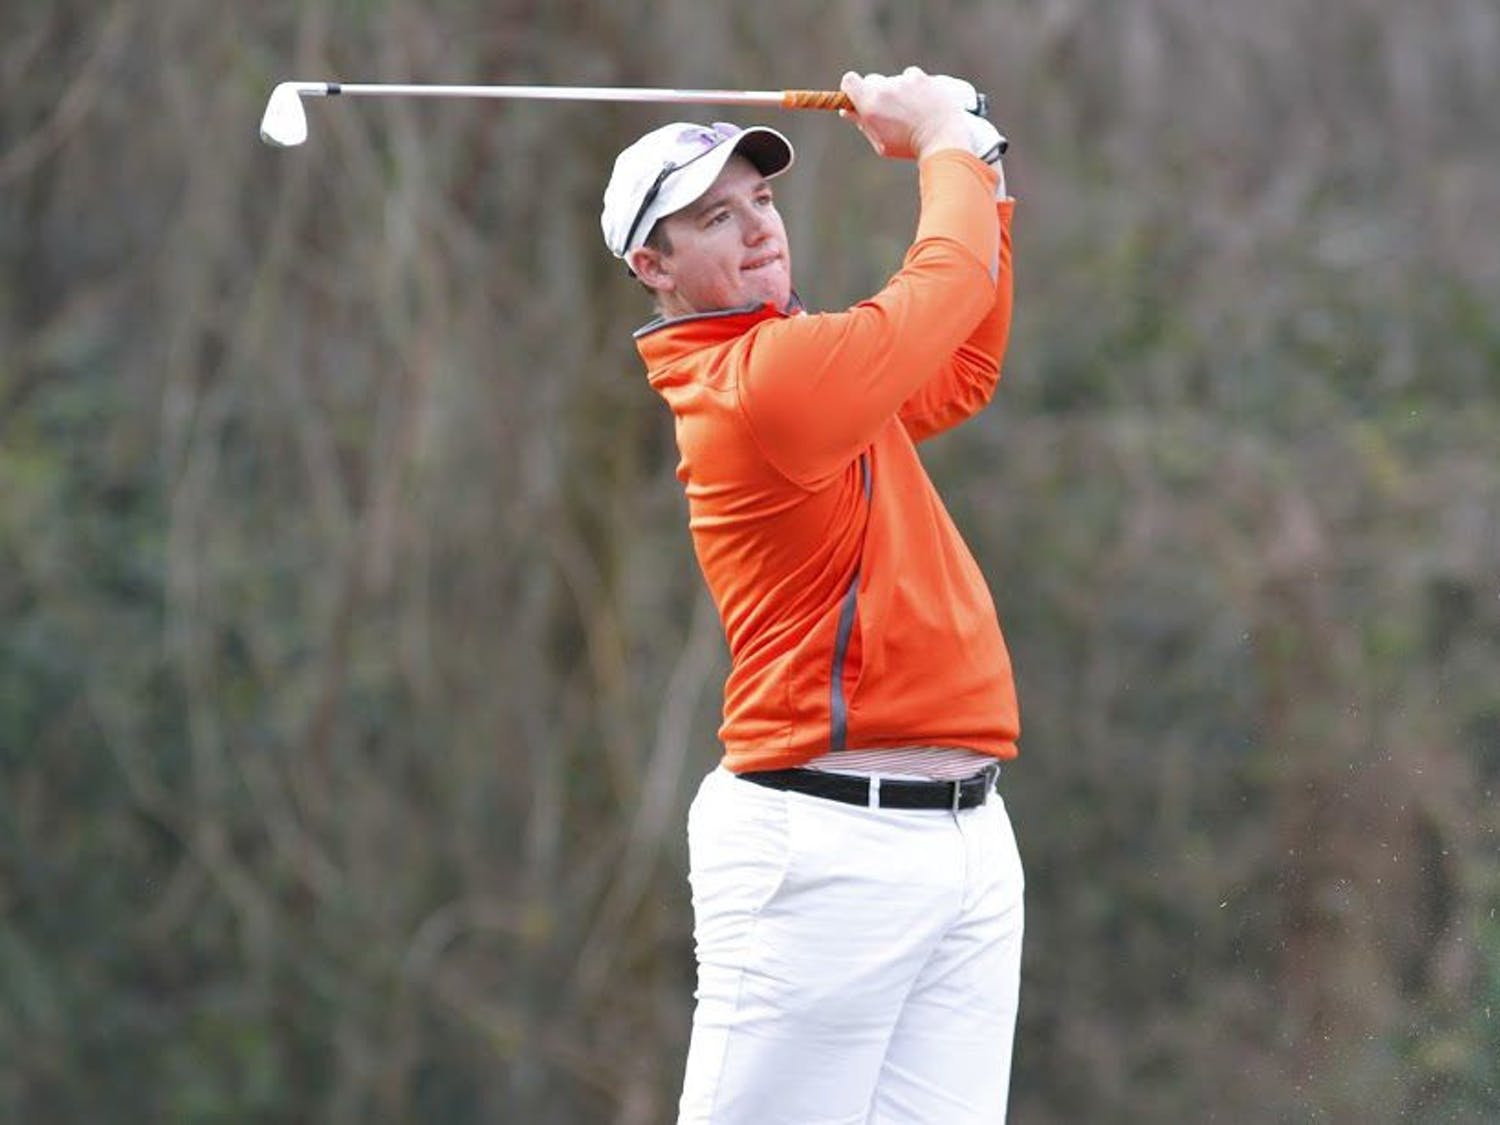 UF's Sam Horsfield swings during the SunTrust Gator Invitational on Feb. 18, 2017, at the Mark Bostic Golf Course.